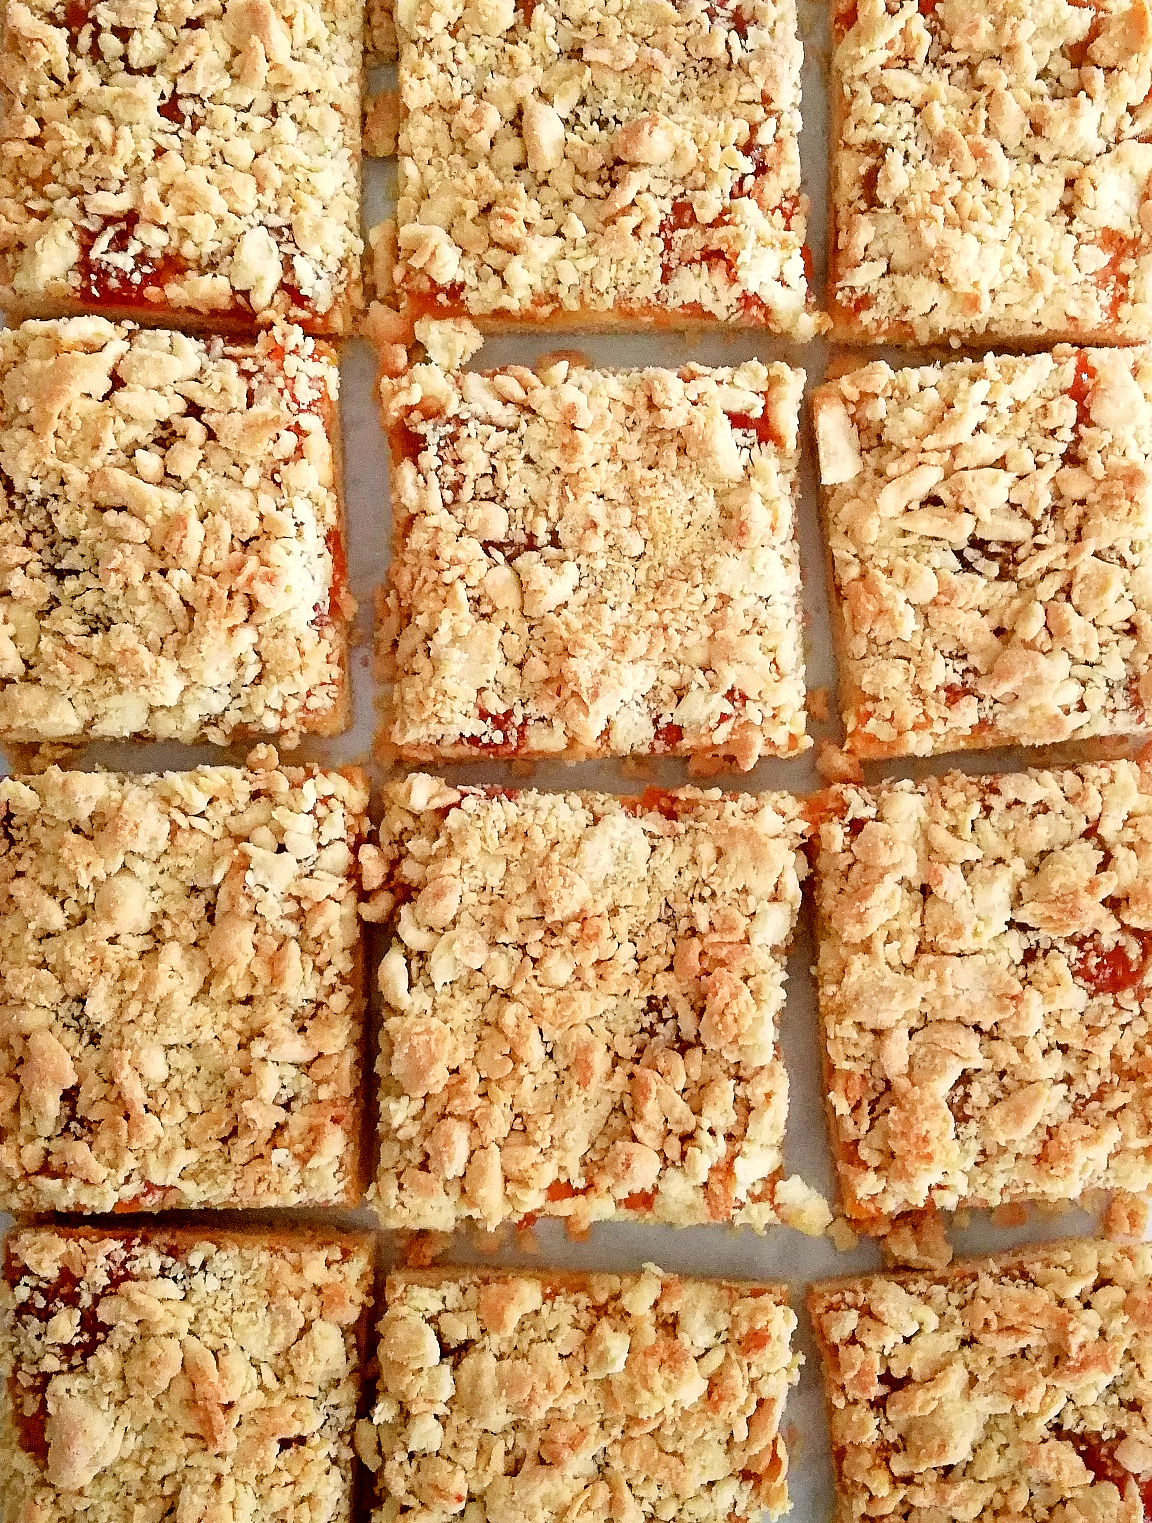 Apricot Jam Bars with a Crumb Topping